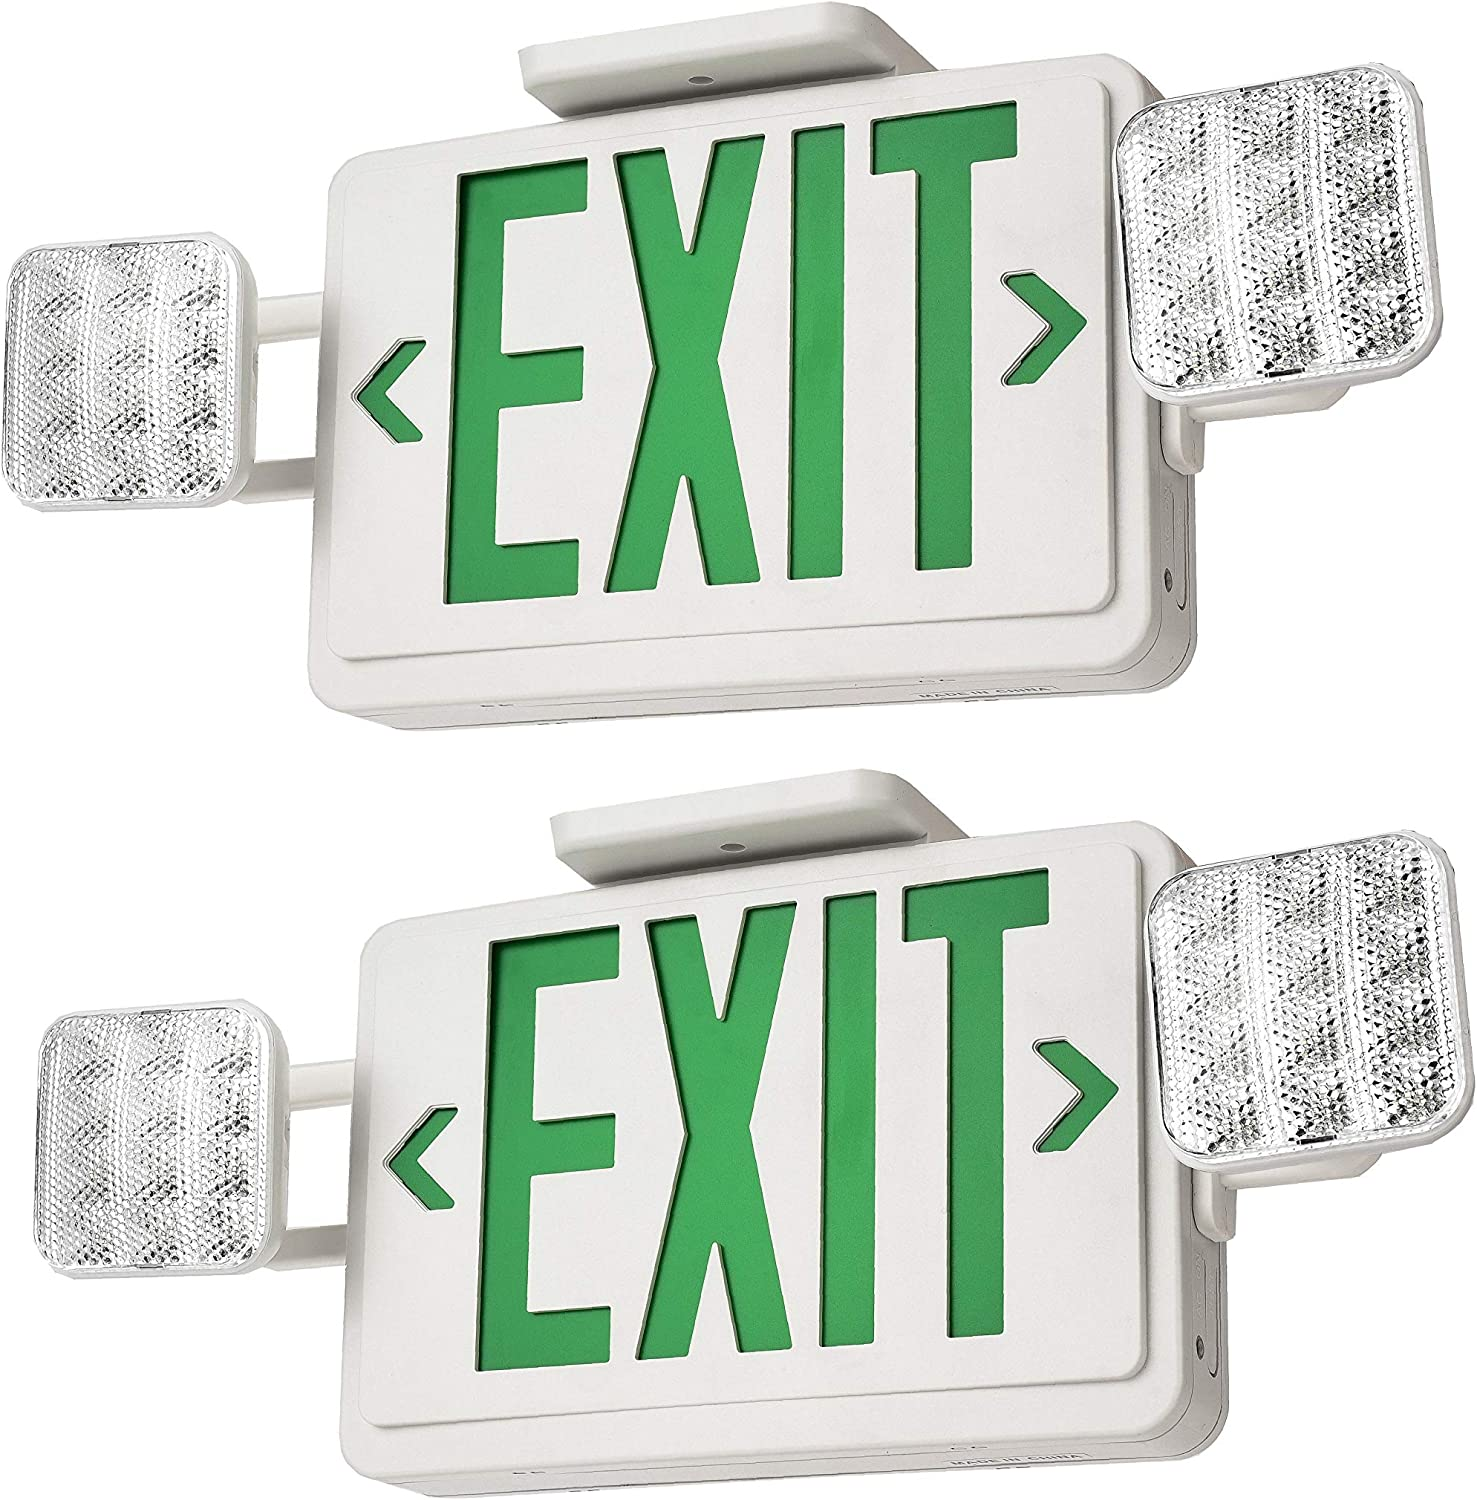 (2-Pack) Dependable Direct Green LED Exit Sign with Emergency Lights Combo with Battery Backup - UL Certified, Double Sided, Commercial Grade for Schools, Apartments, Offices, Hotels